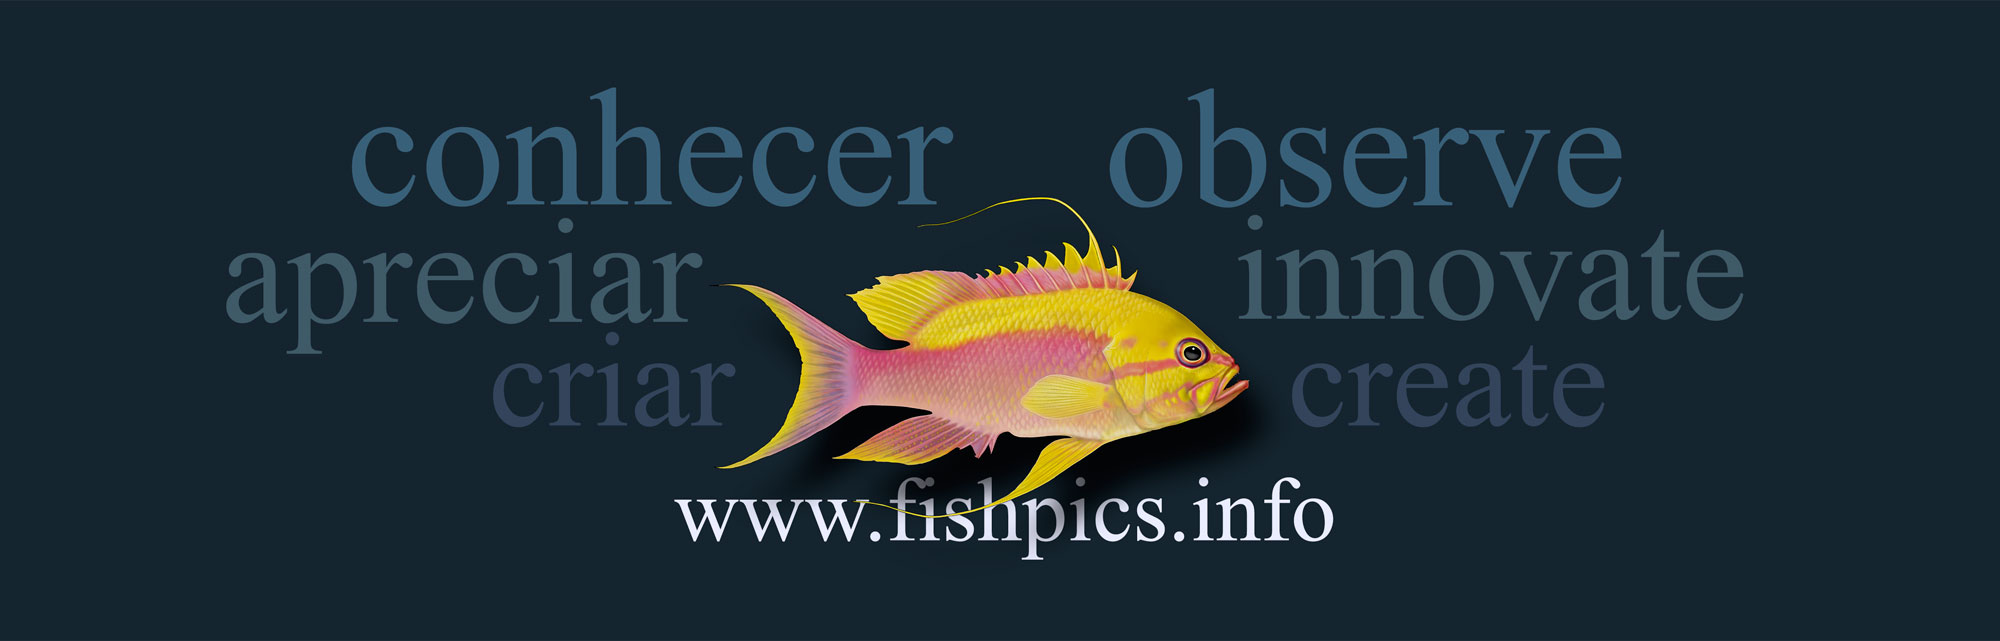 FISHPICS_CREATE